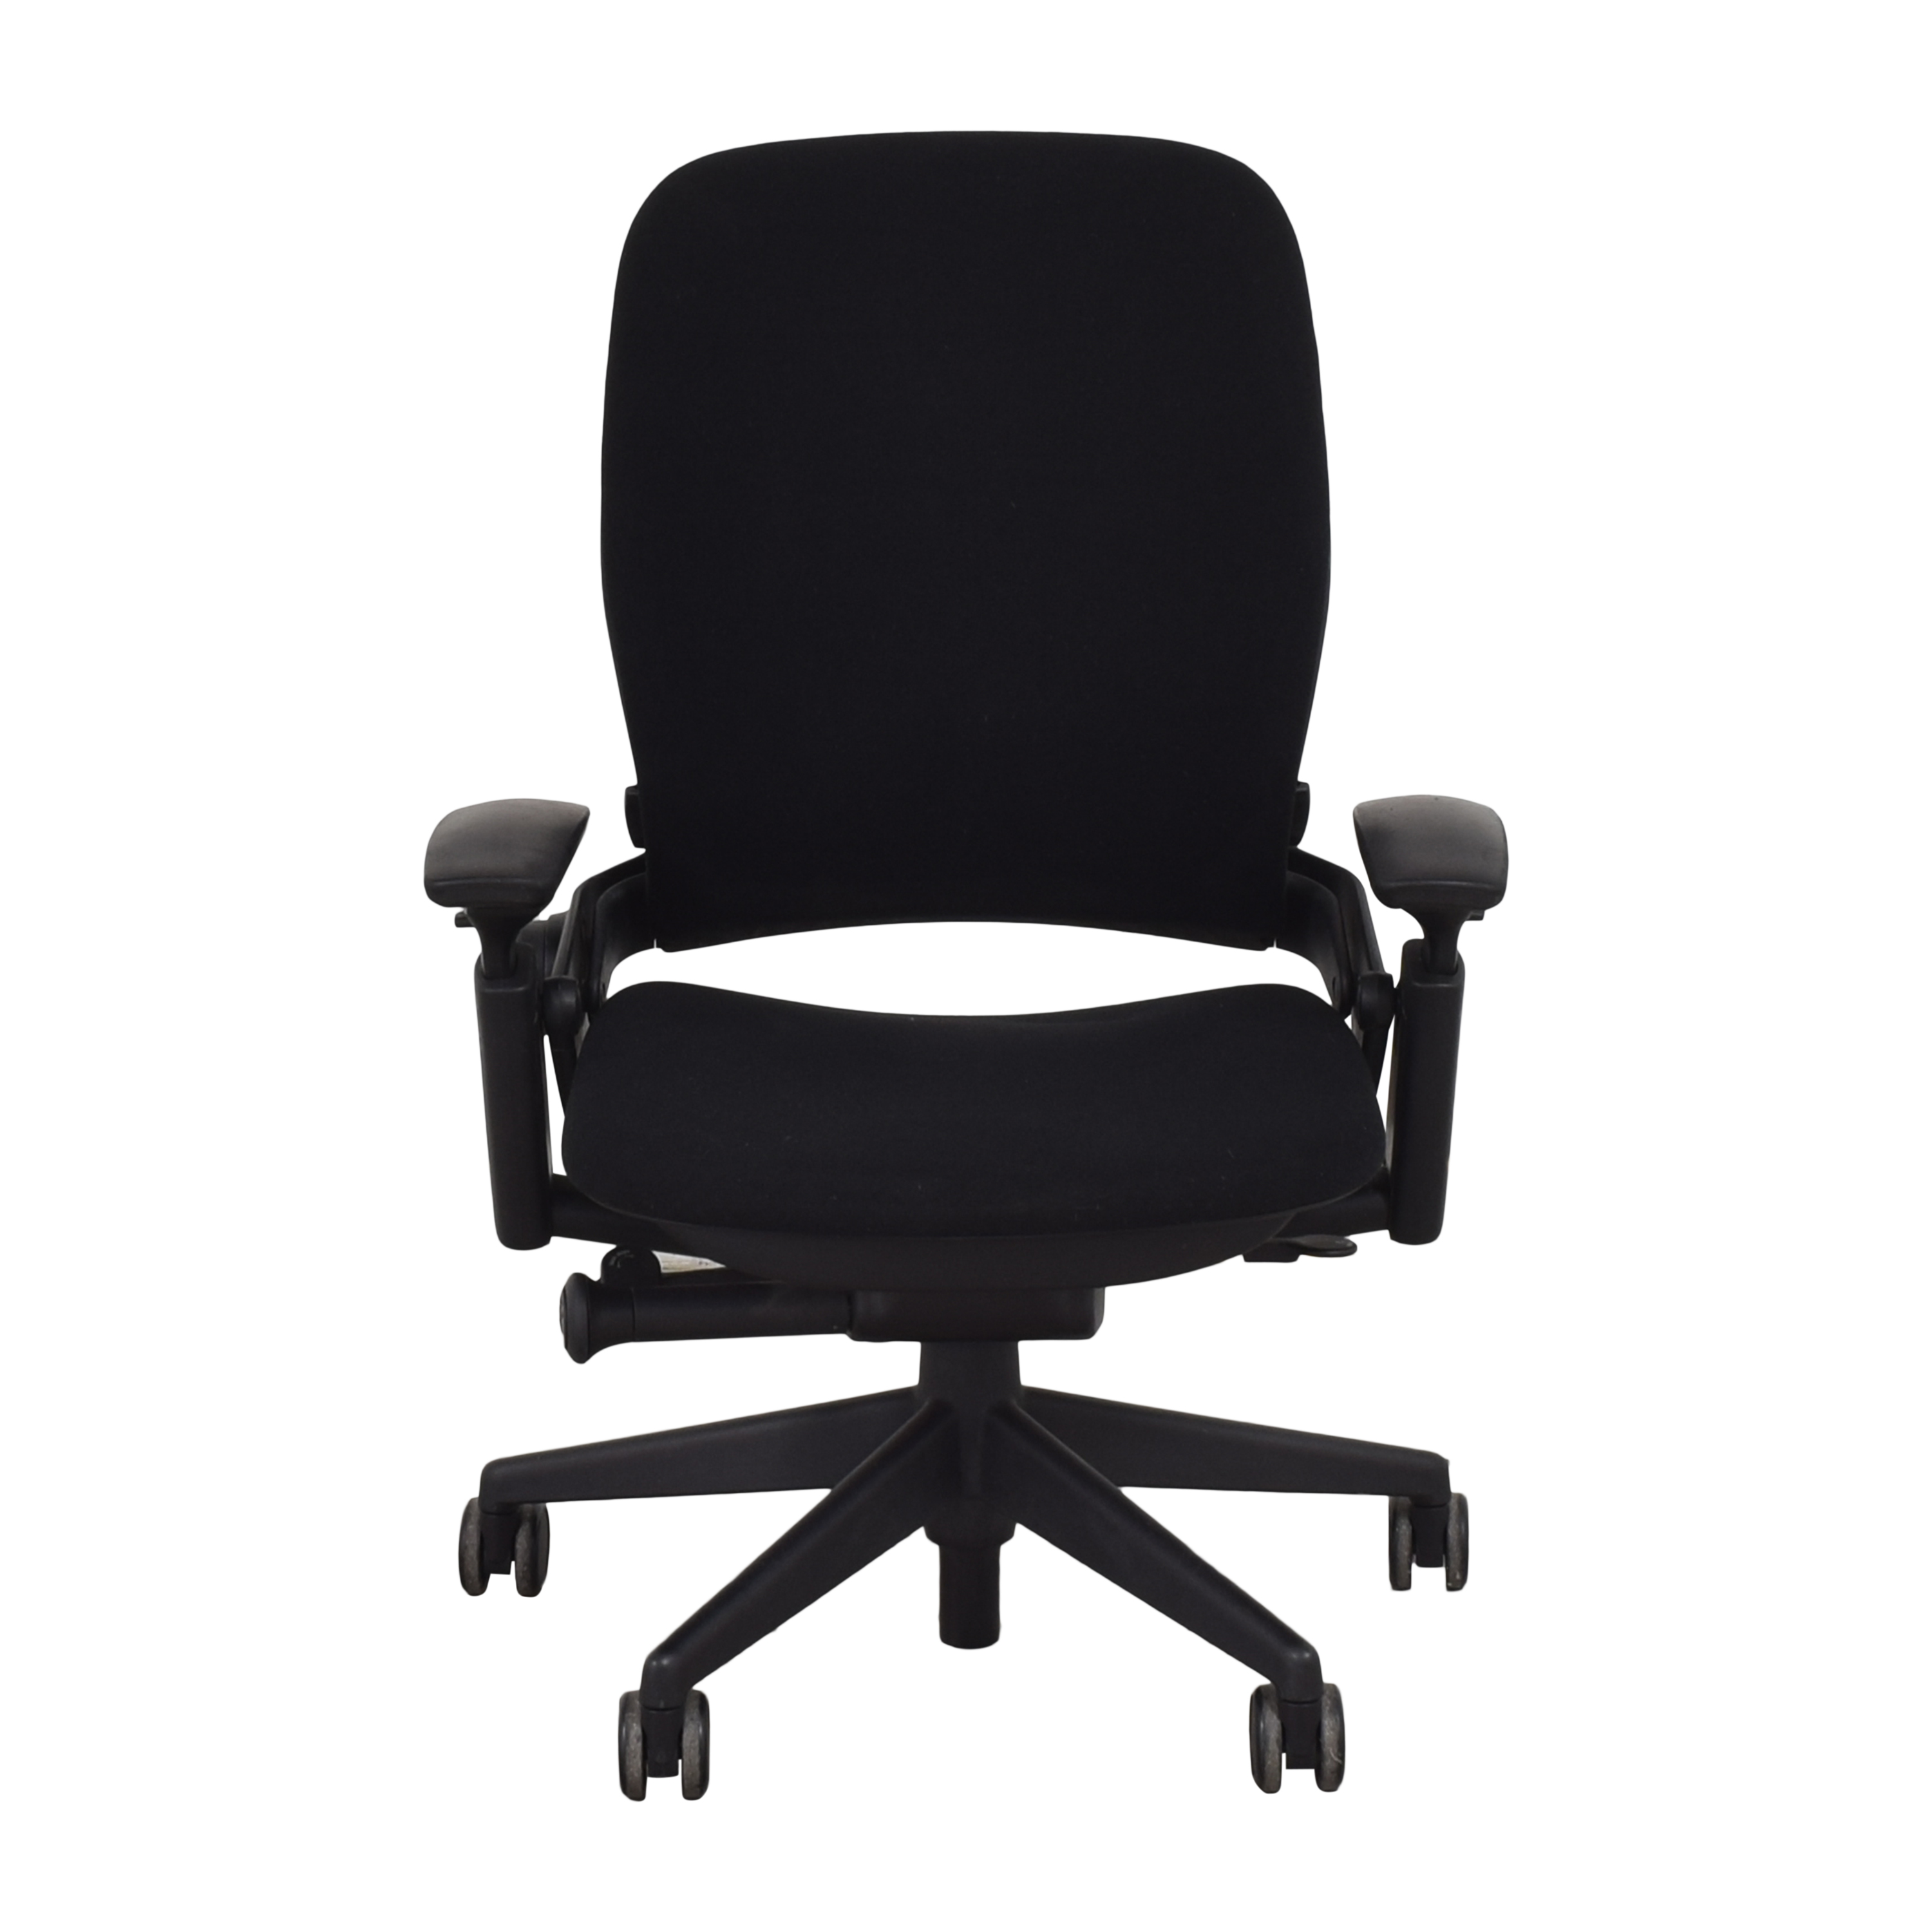 Steelcase Steelcase Leap Office Chair used